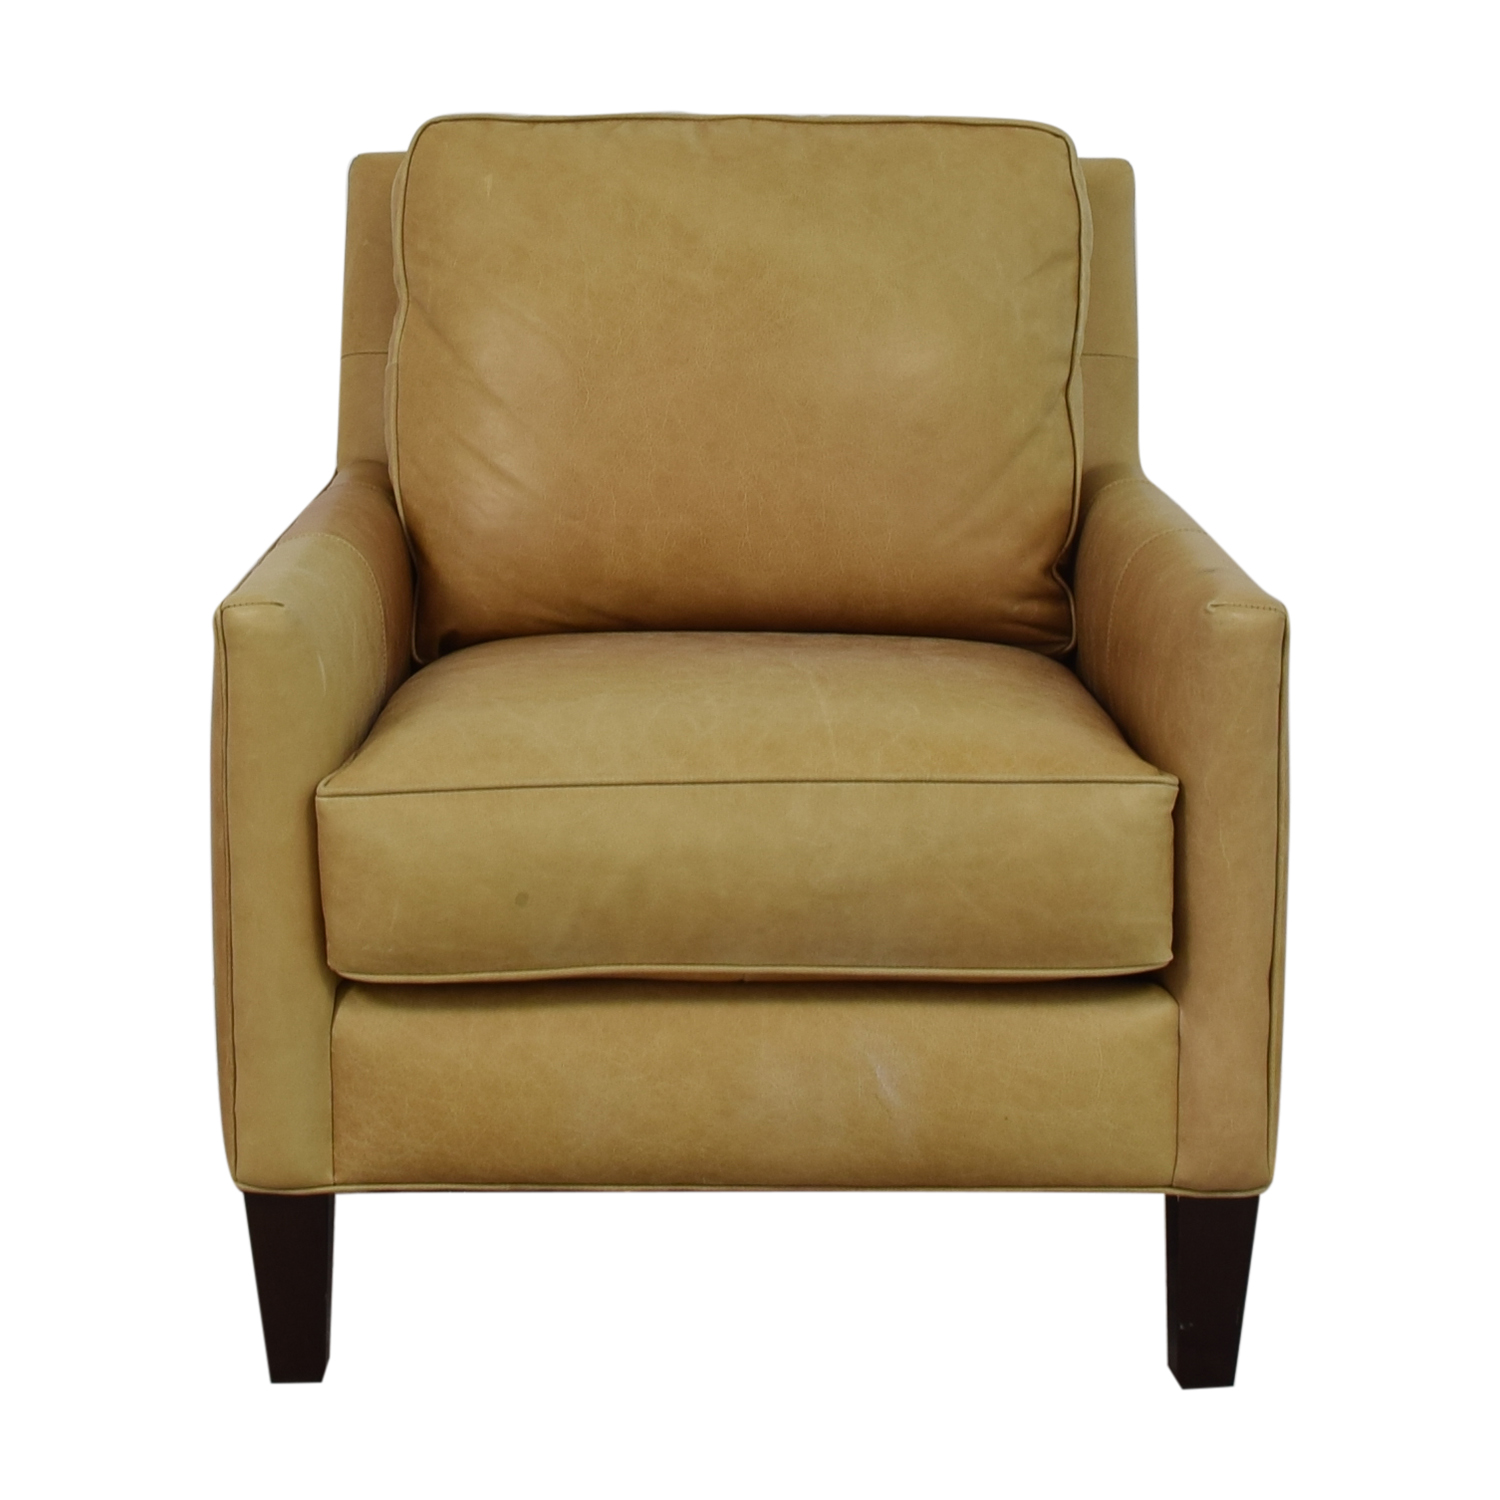 Thomasville Leather Armchair / Chairs